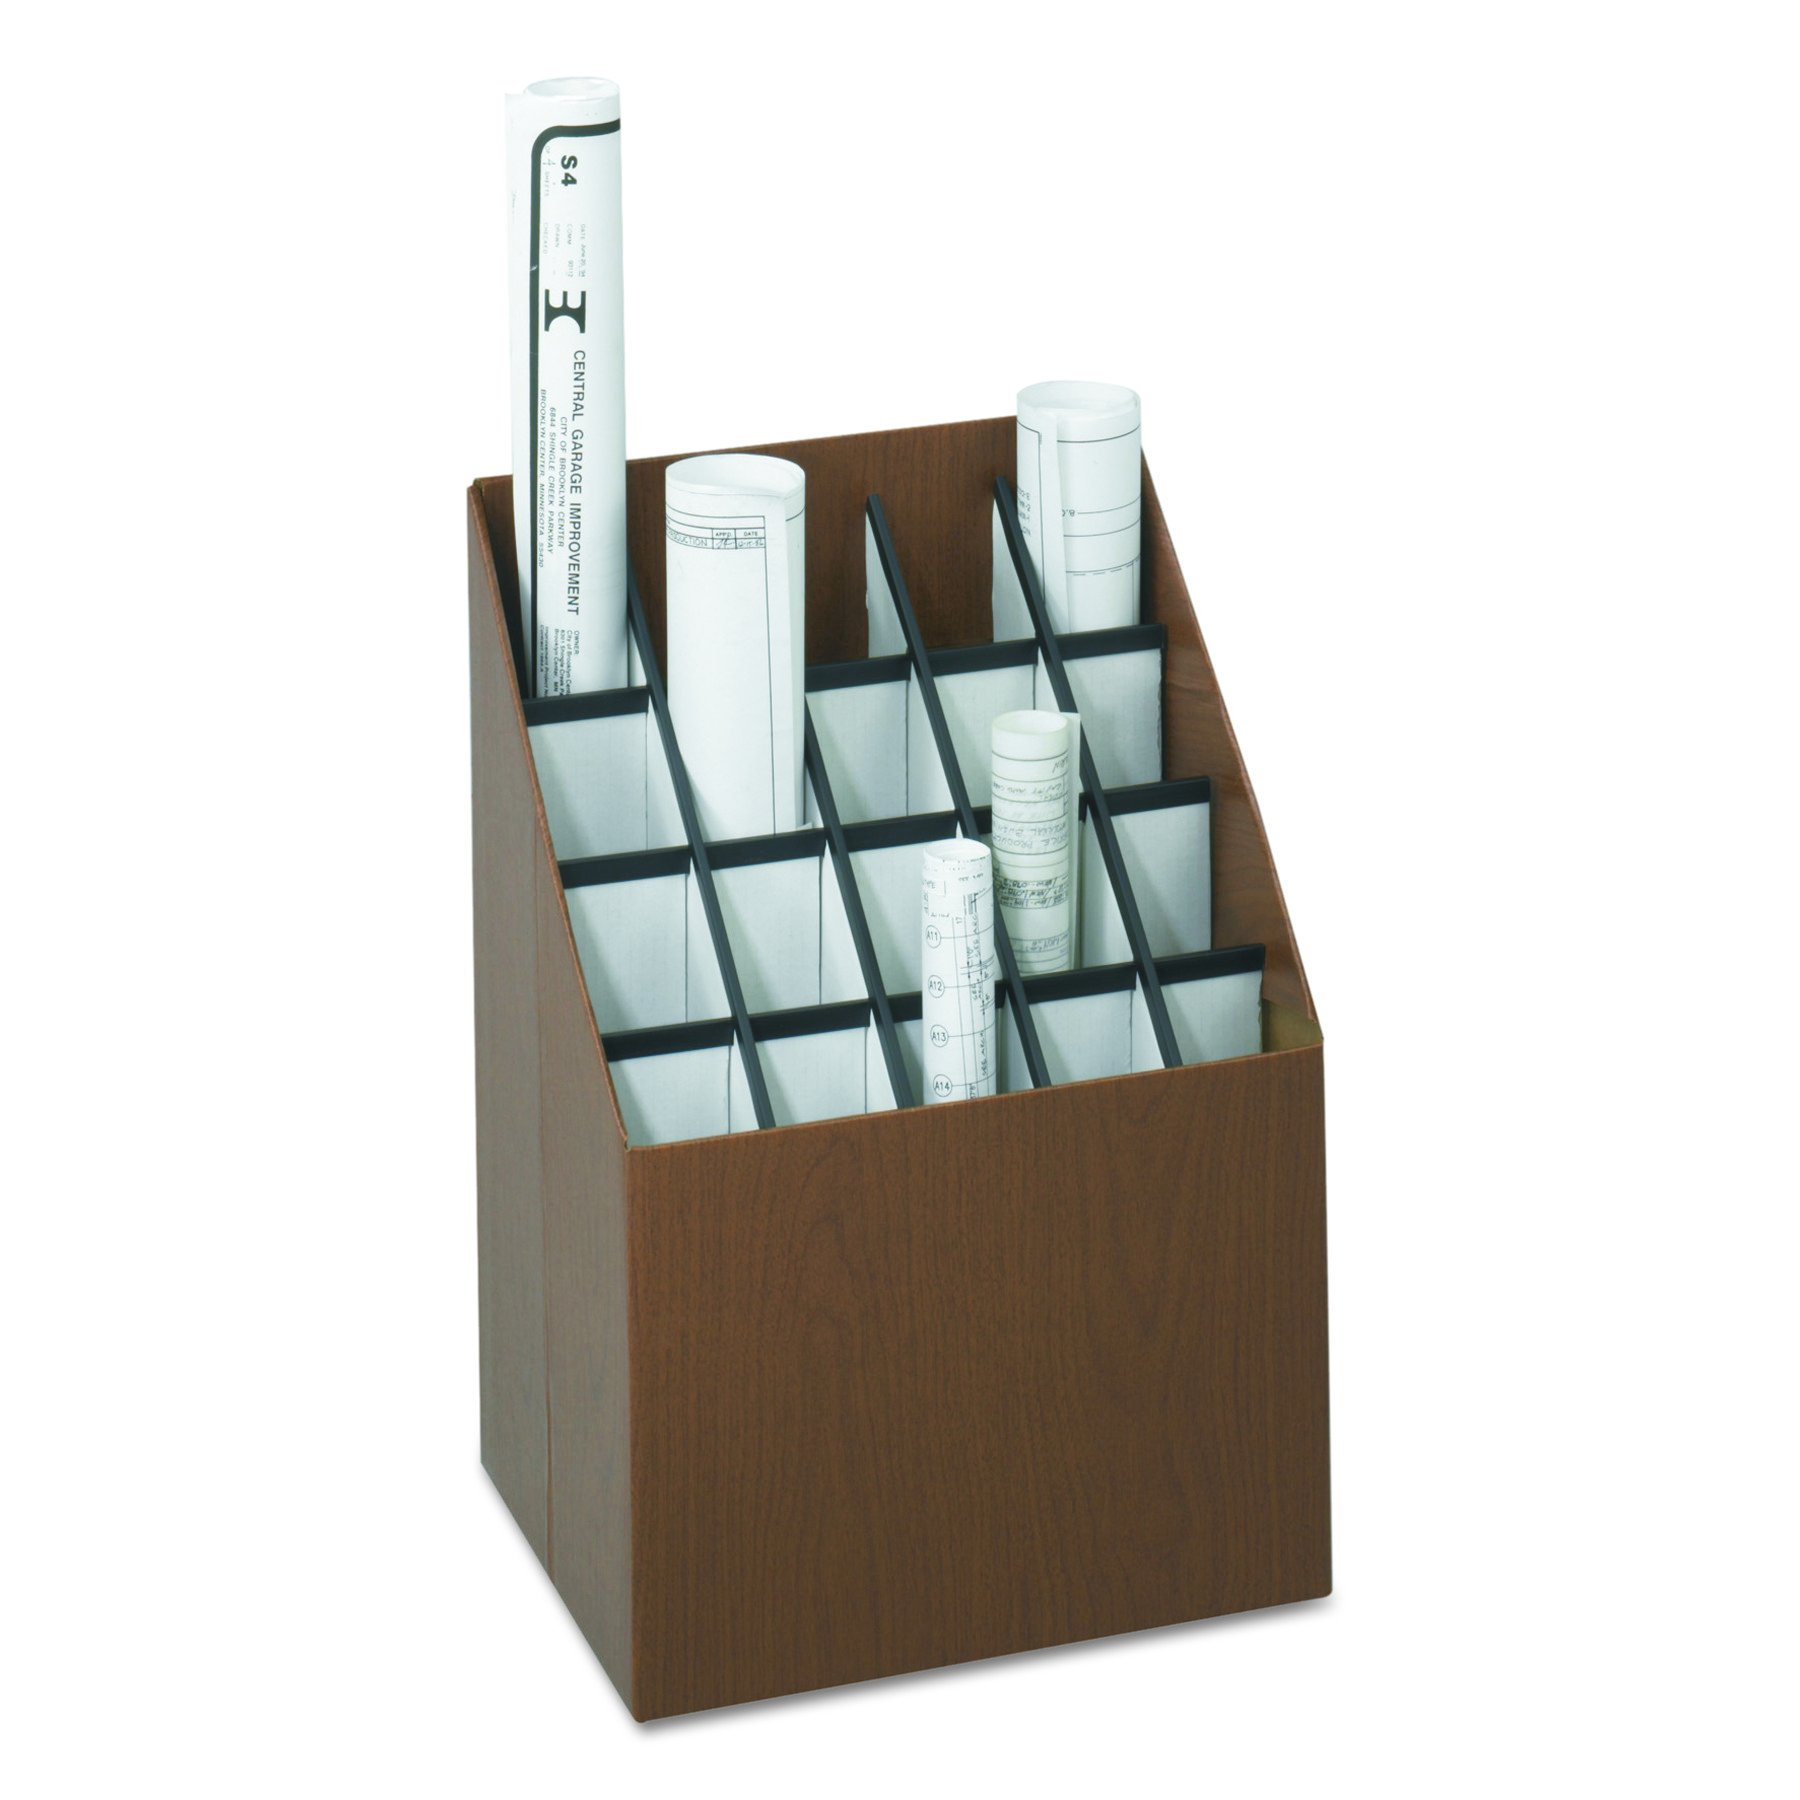 Safco Products 3081 Vertical Roll File, 20 Compartment, Walnut by Safco Products (Image #3)